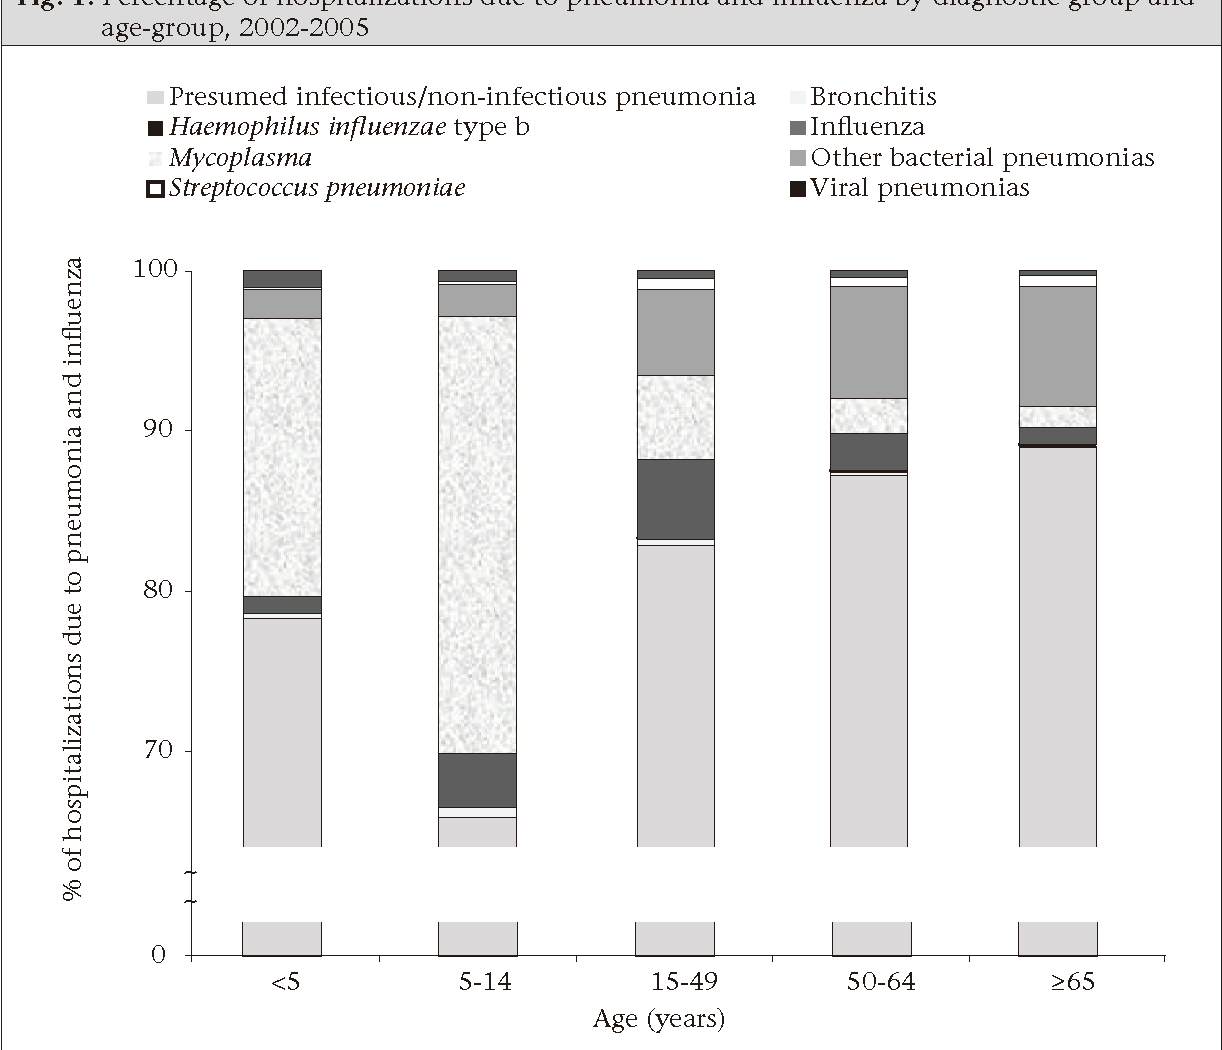 Fig. 1. Percentage of hospitalizations due to pneumonia and influenza by diagnostic group and age-group, 2002-2005